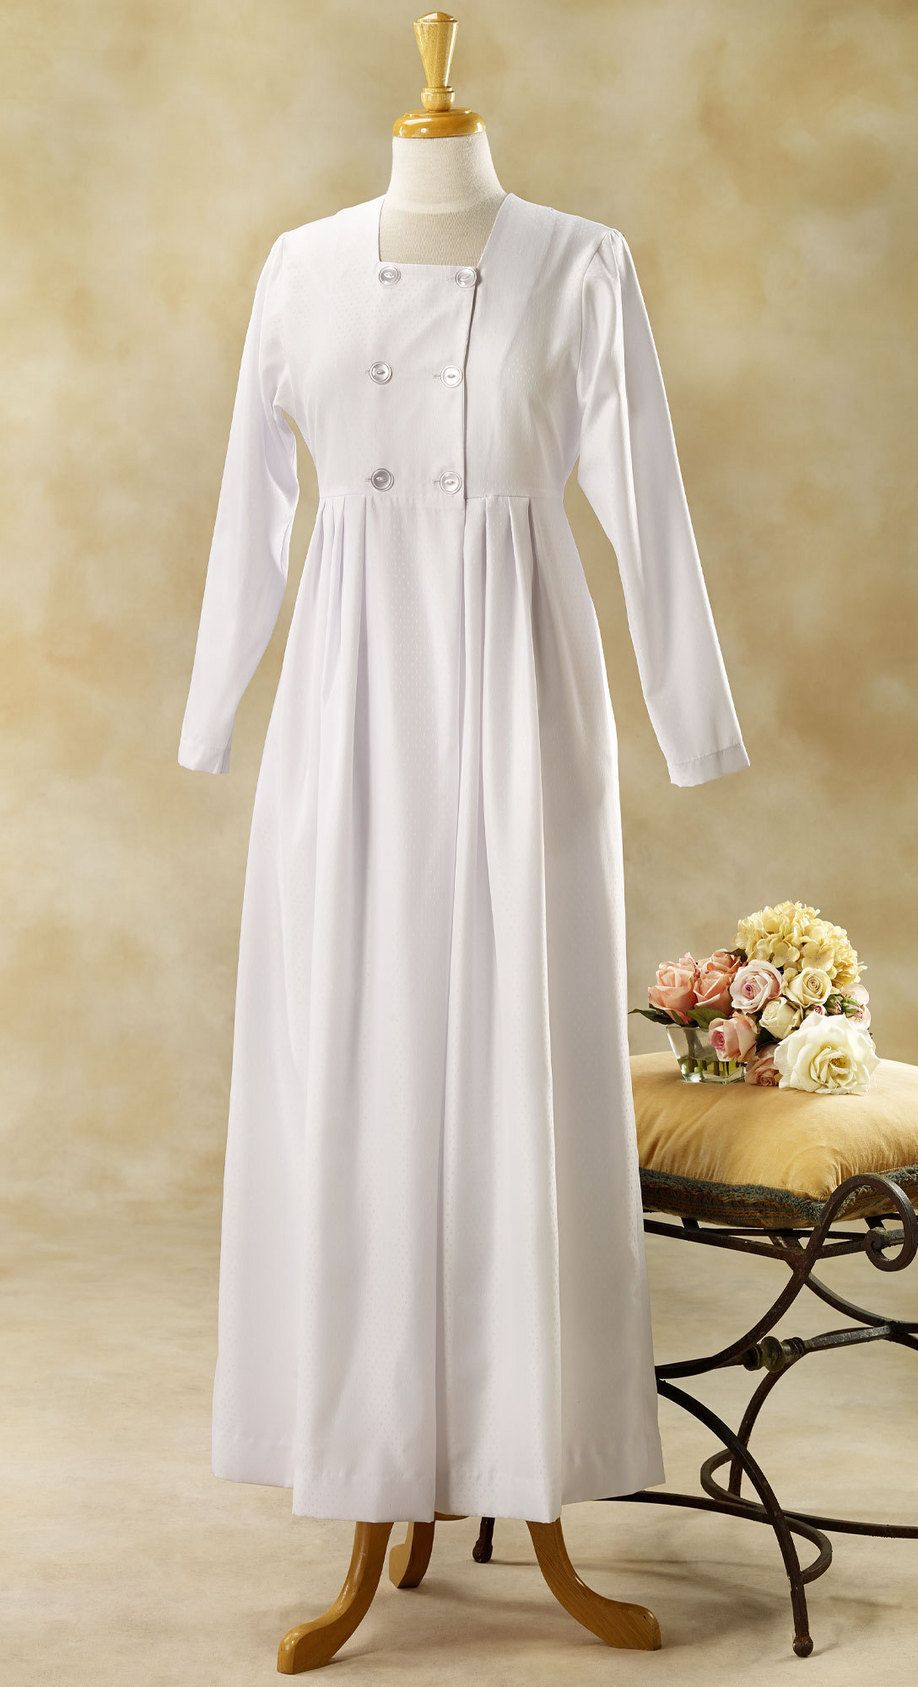 Lds temple dresses white elegance pioneer